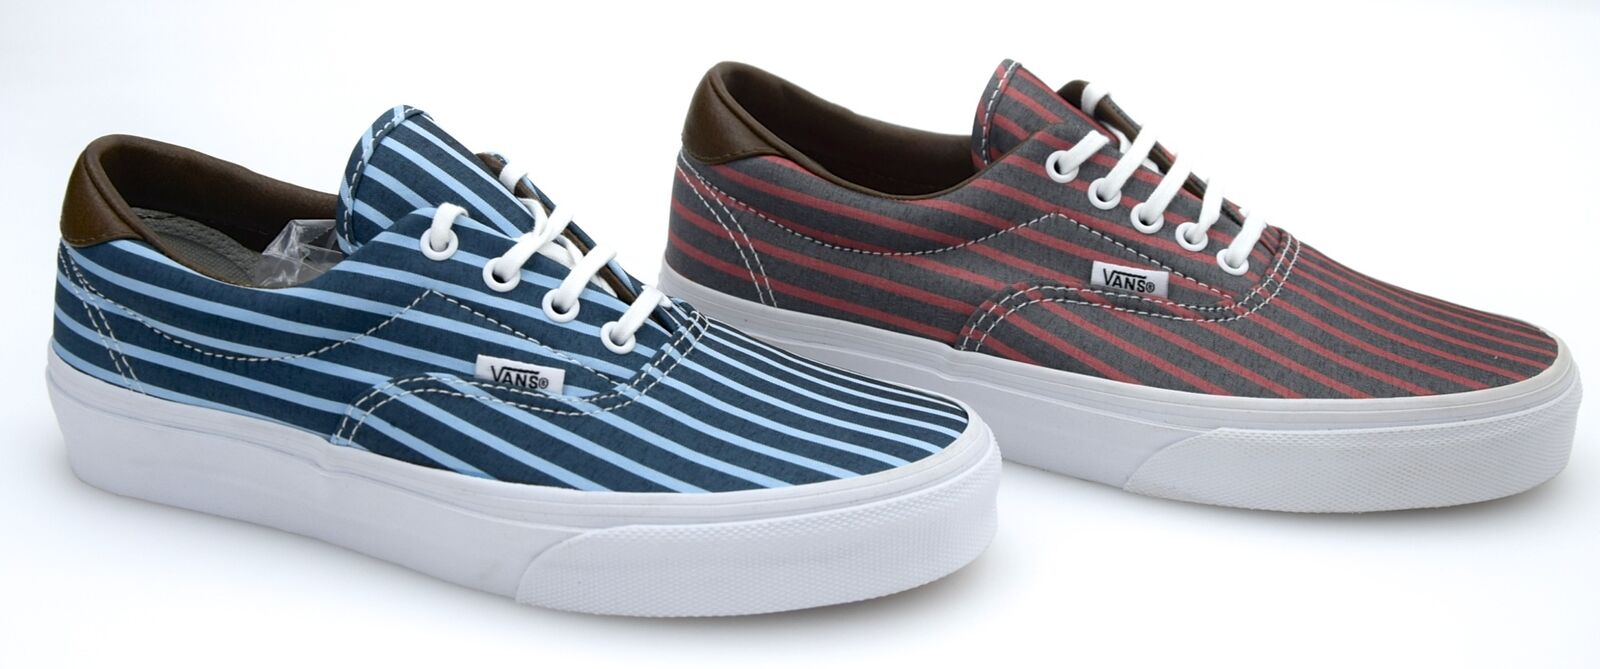 Vans Womens shoes Sneaker Casual Fantasy rows Article was 59 uc6c4i-uc6c4e